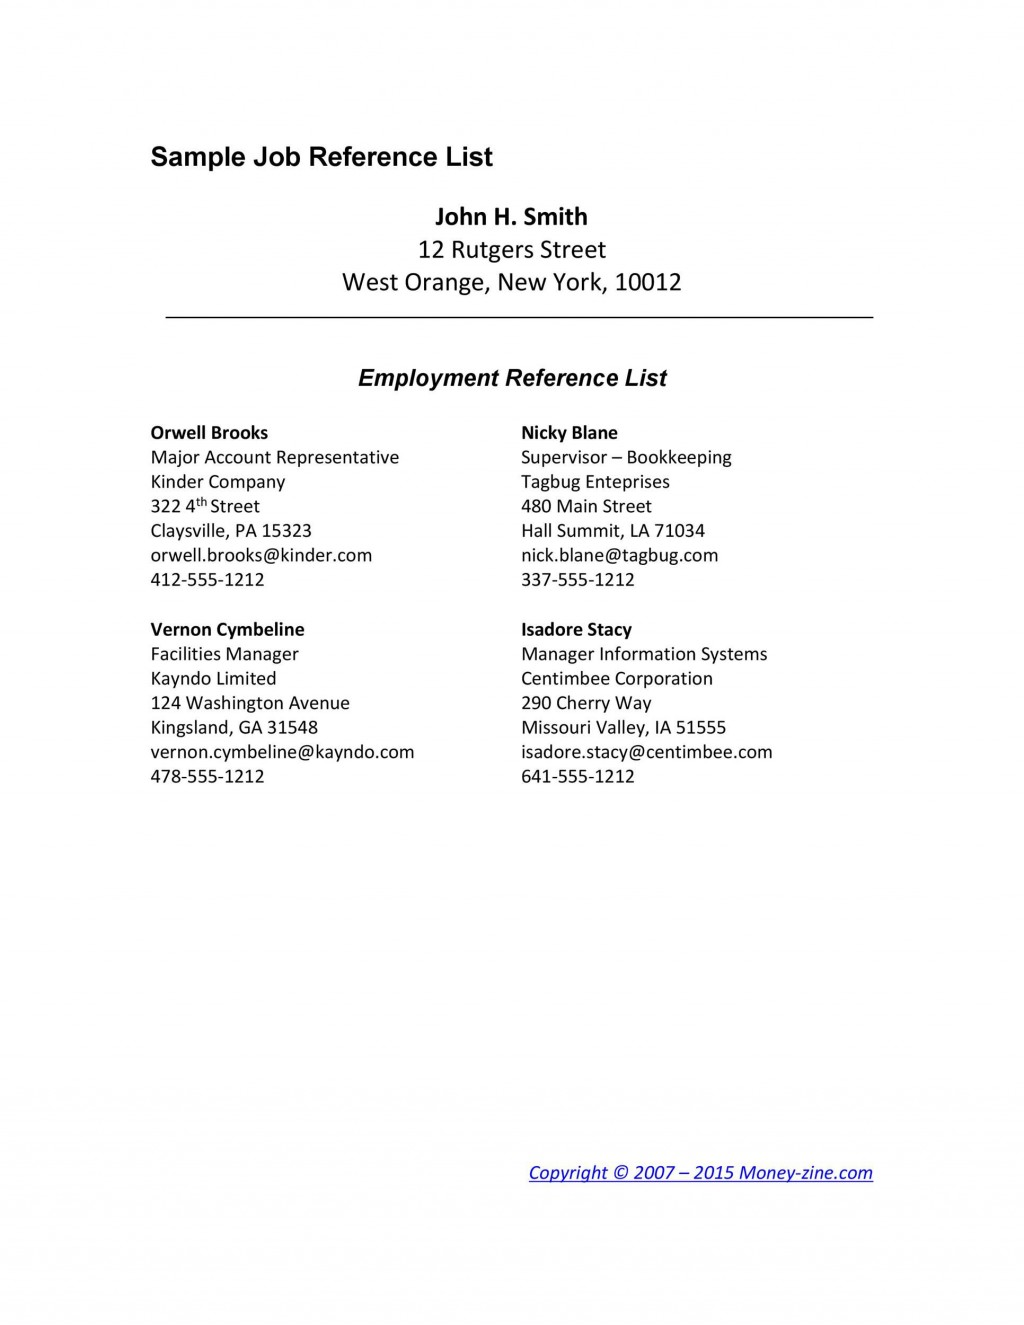 007 Unbelievable List Of Job Reference Sample Image  Format Employment TemplateLarge